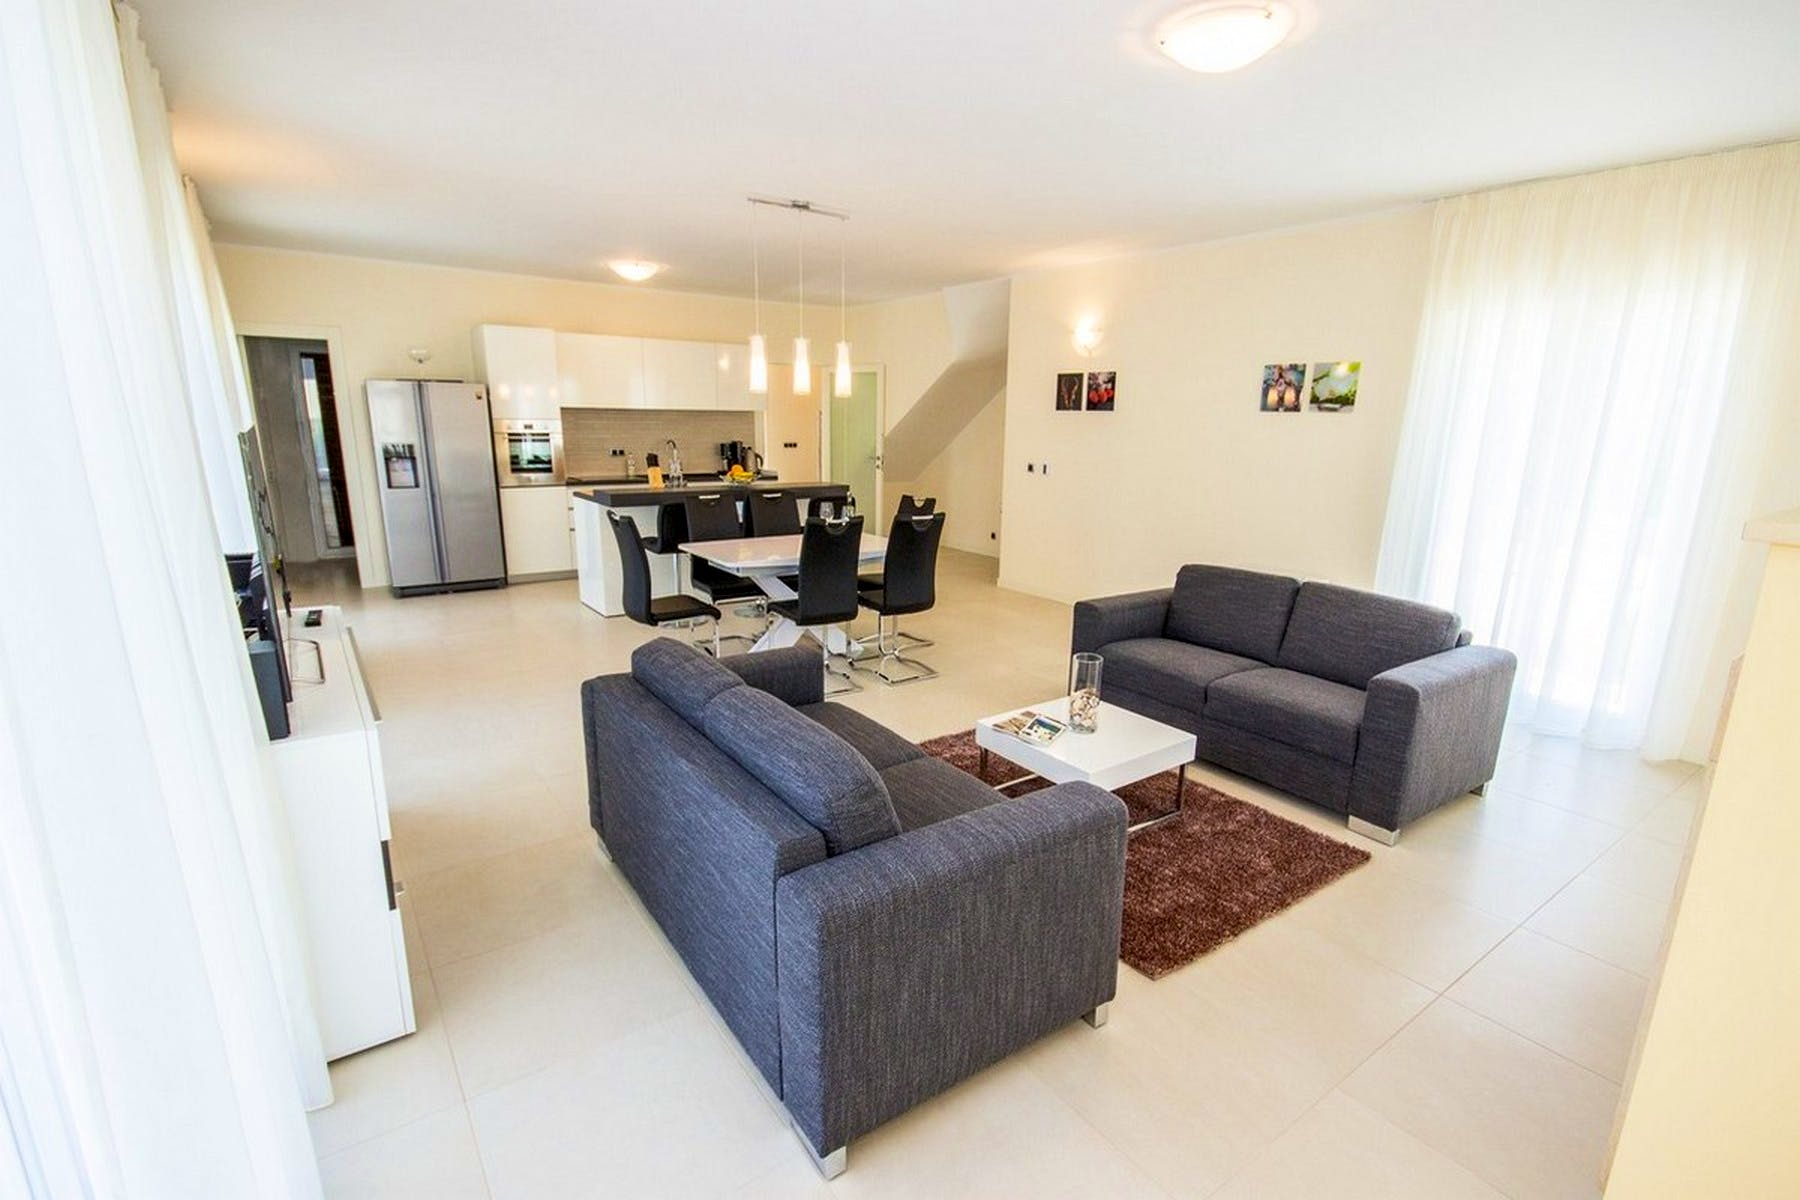 Fully and modernly furnished living room